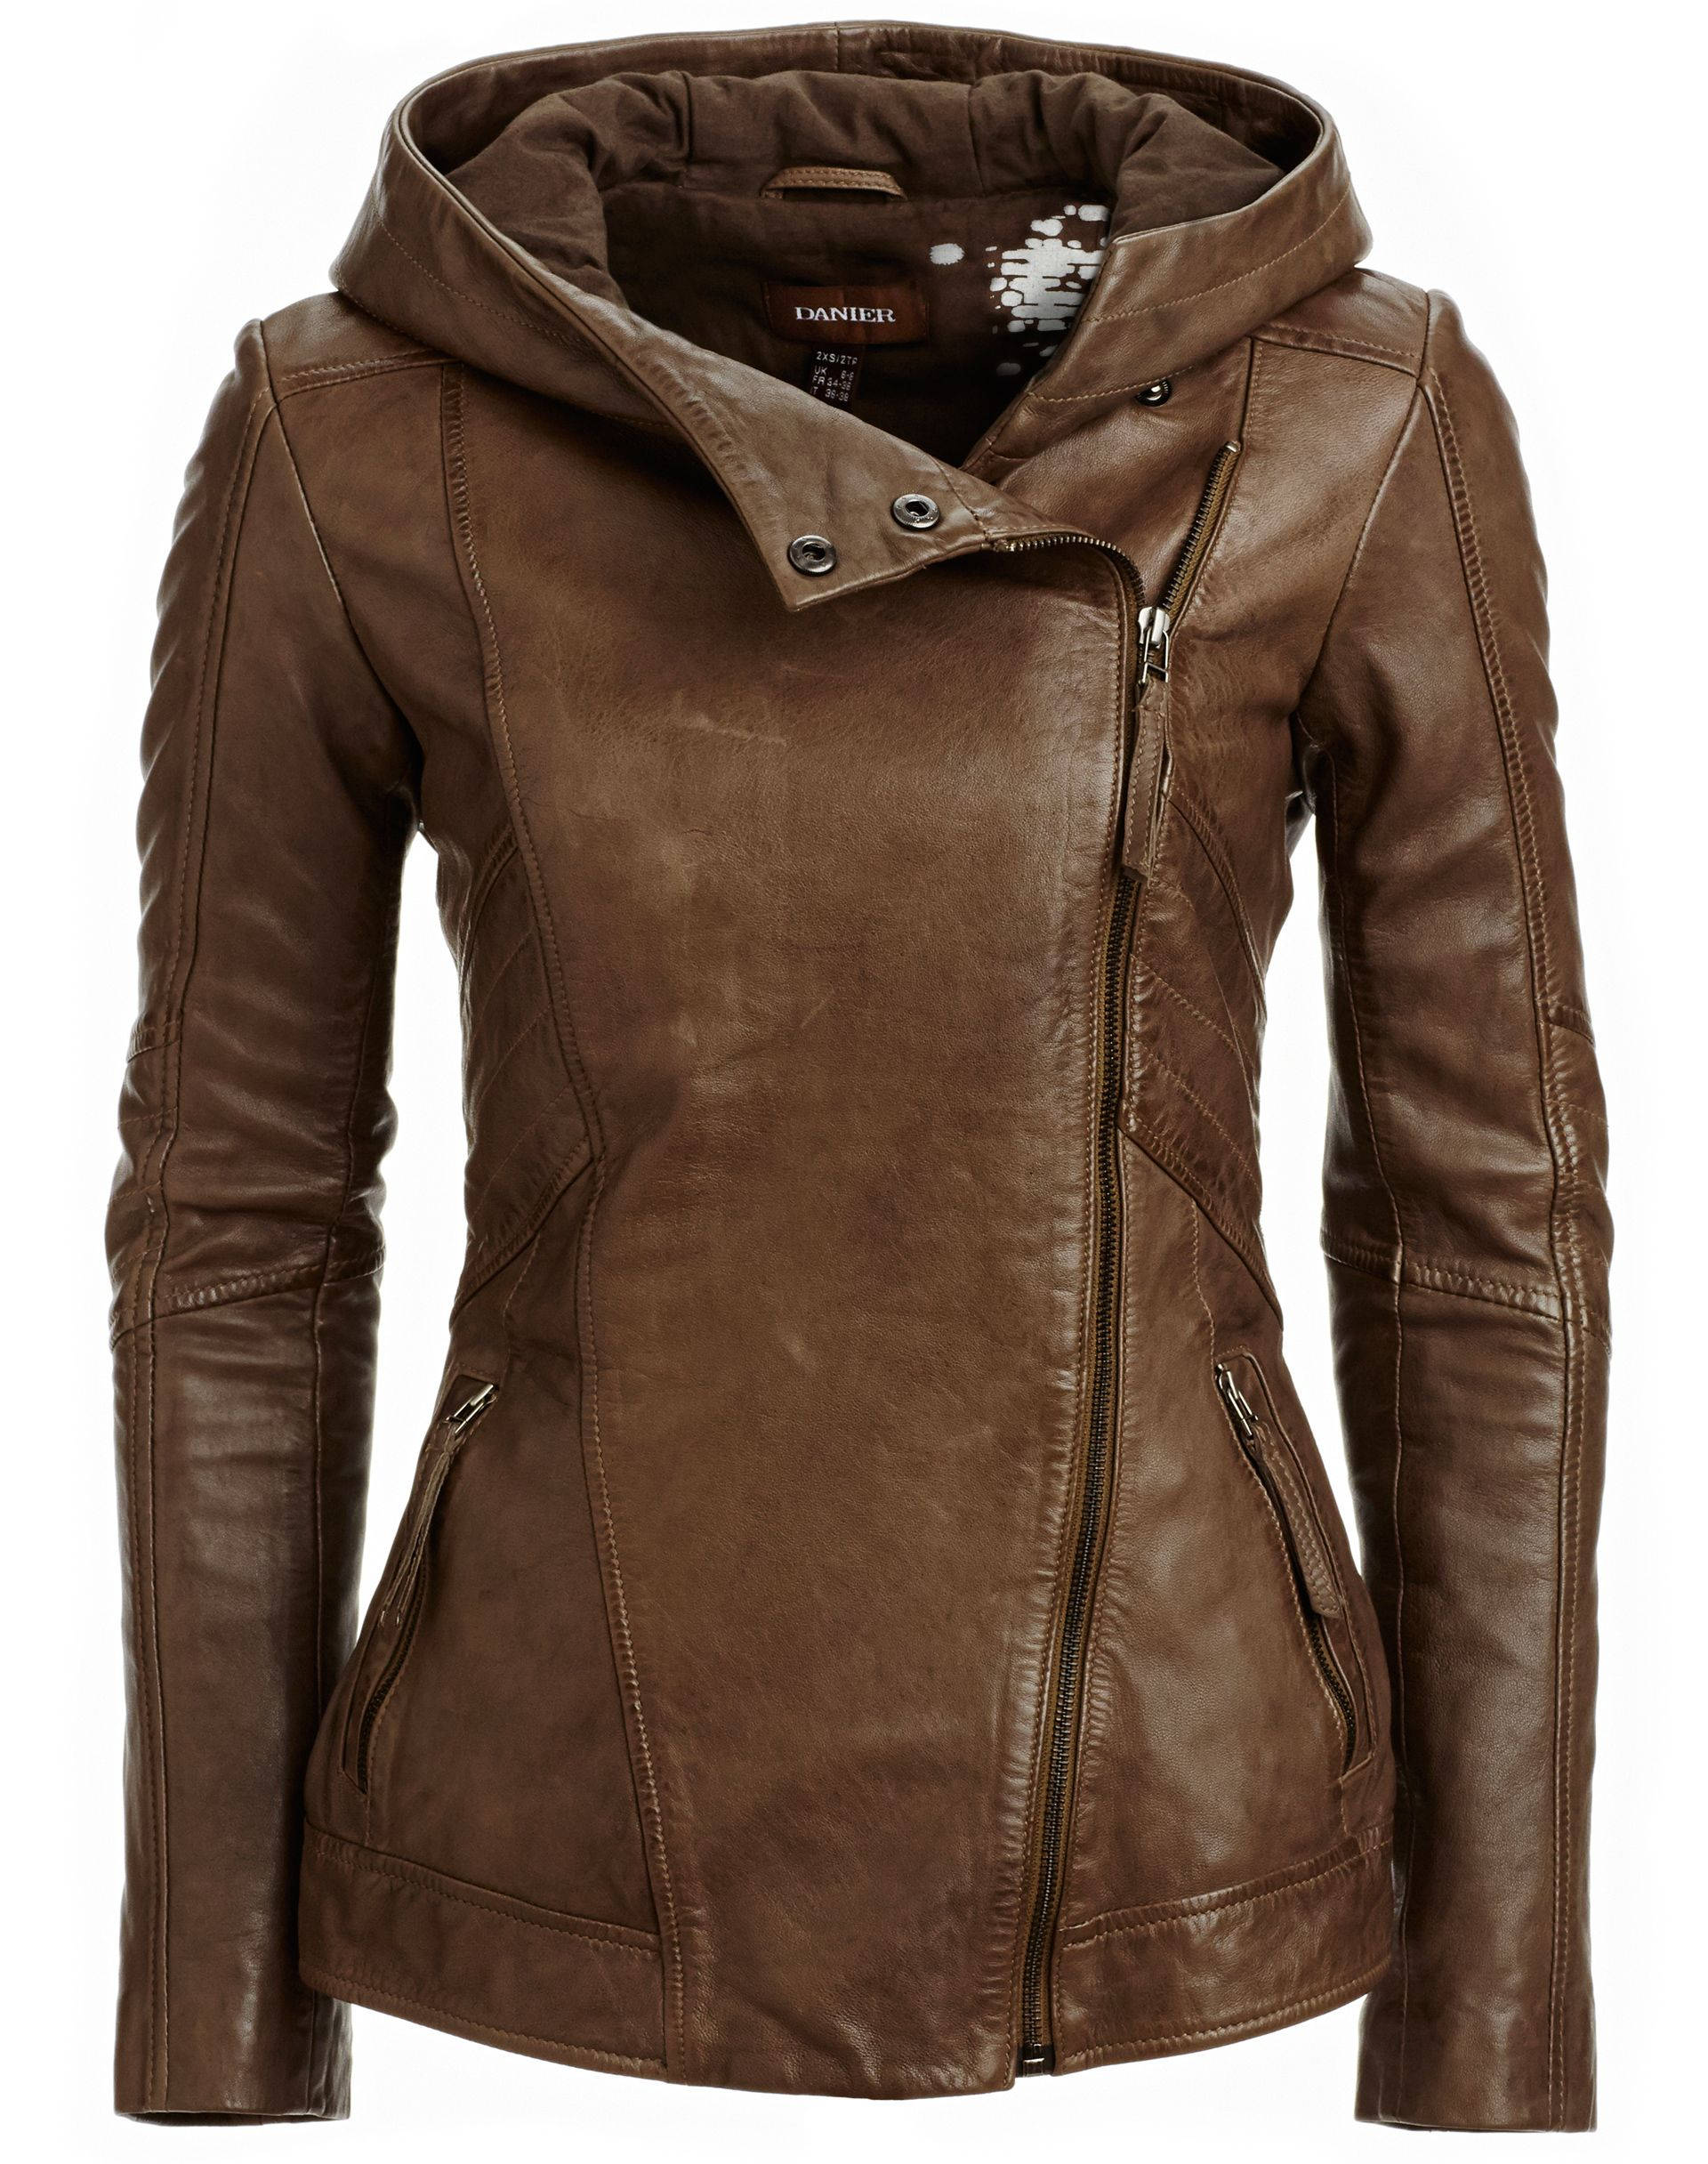 Danier Leather Jackets  Style: 104030573  $365 I love love this jacket. The neck, the shape,the leather.